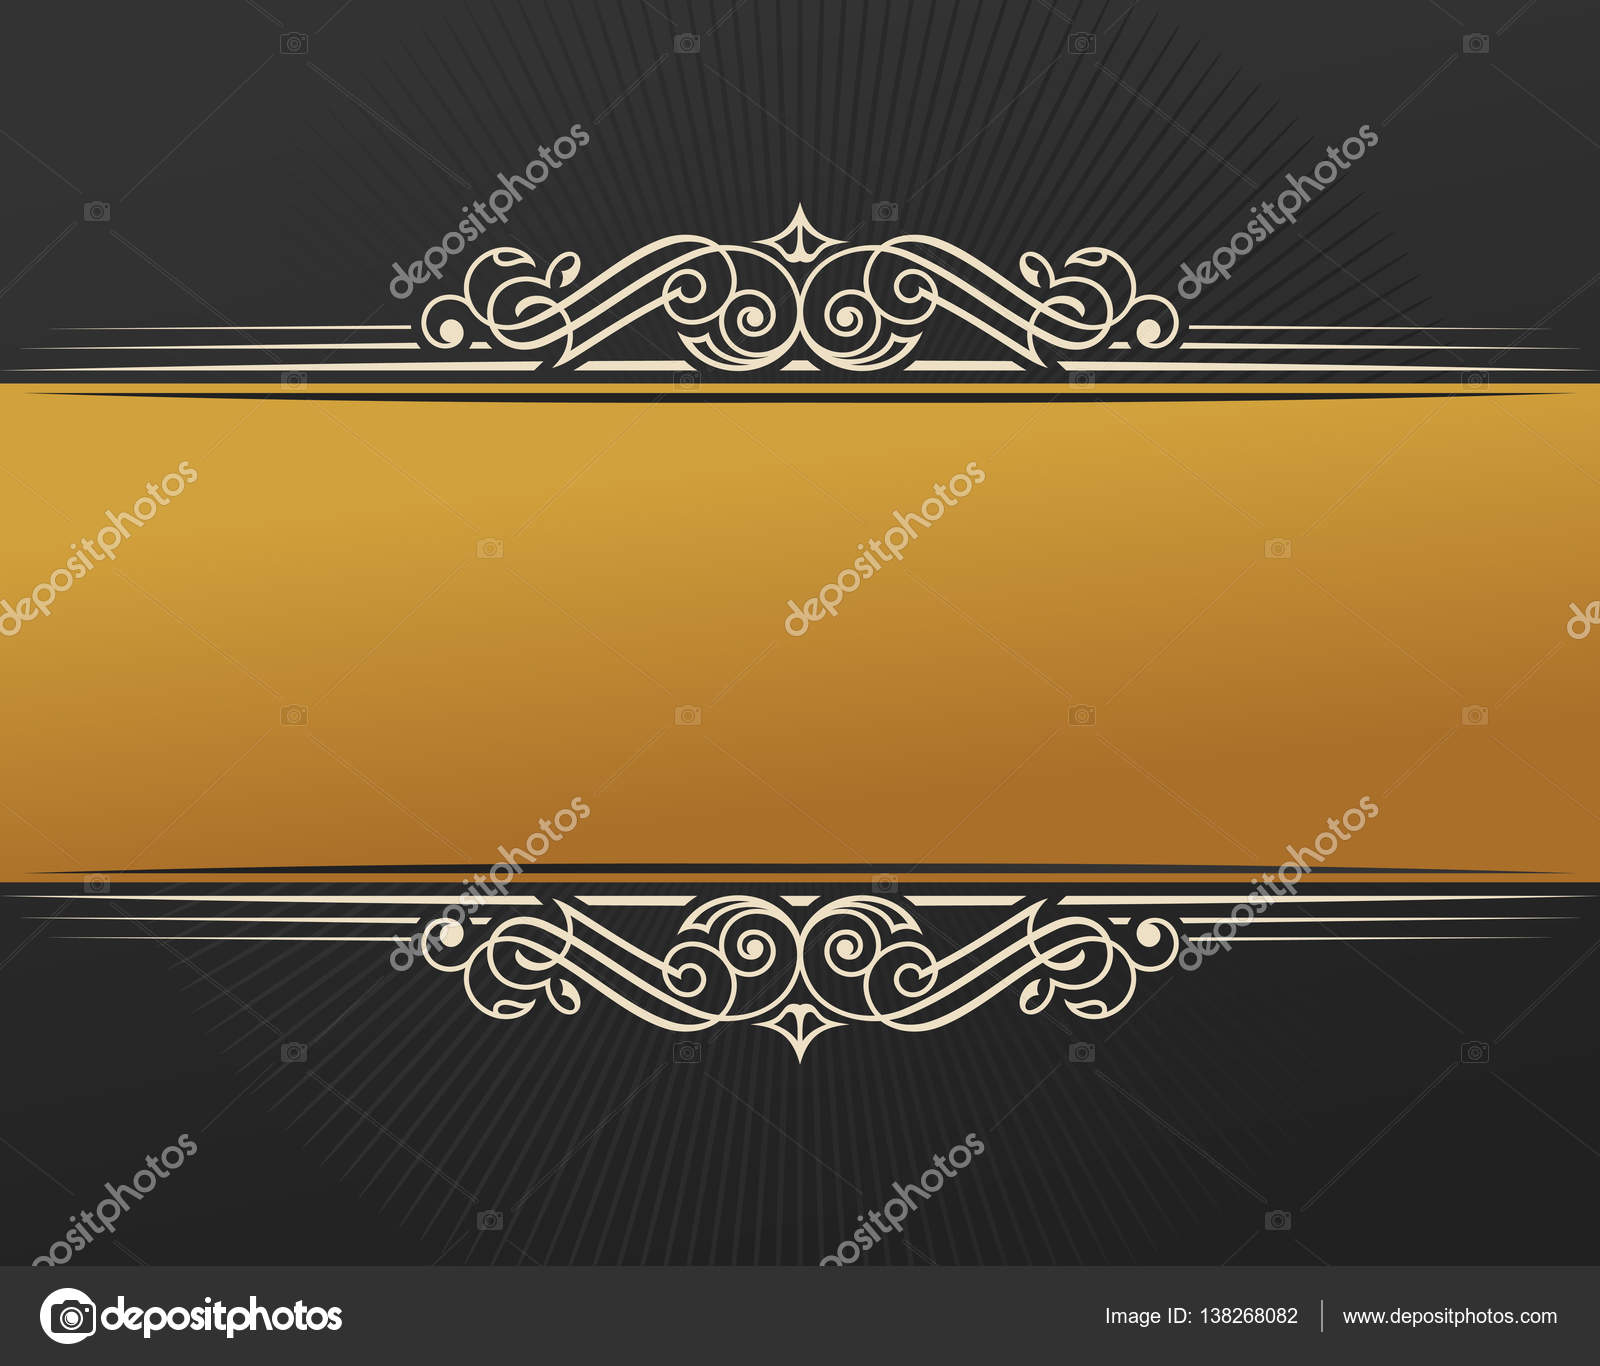 Banner islam ethnic design gold invitation vintage label frame gold invitation vintage label frame blank sticker emblem eastern black illustration for text luxury vignette for a gift card invitation template logo stopboris Image collections